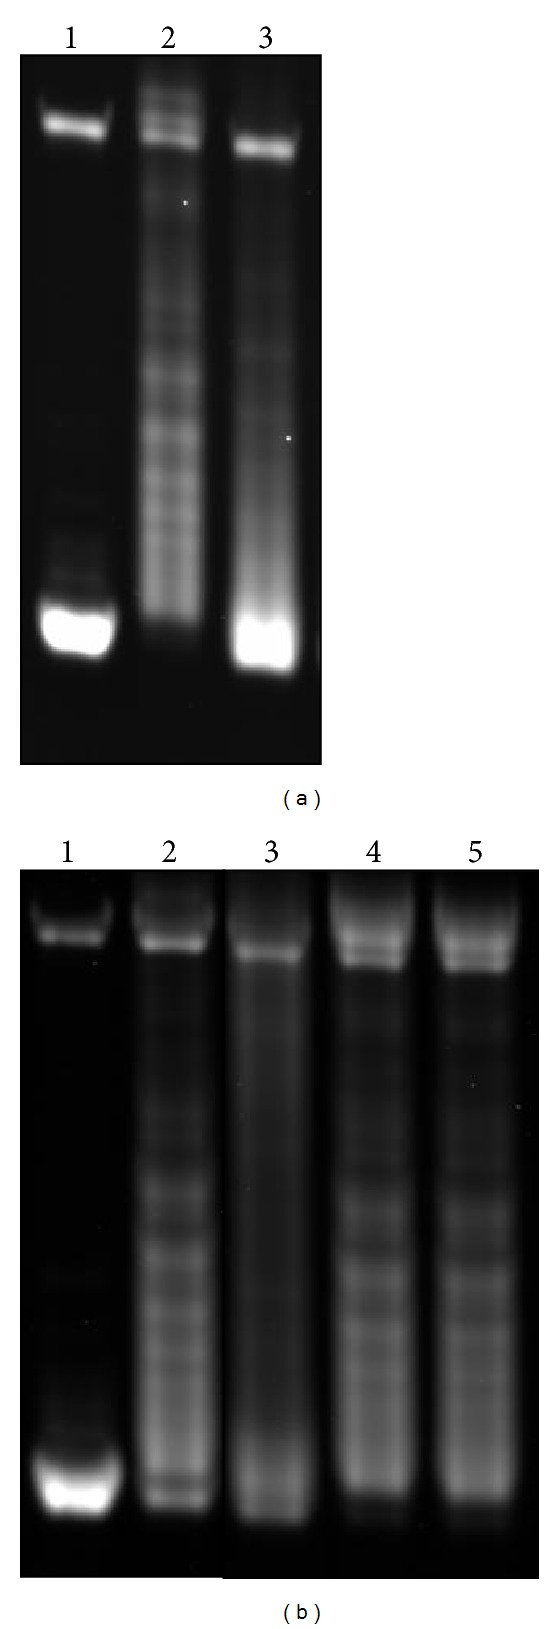 R-loop formation on pSK-(AGGAG) 22 and effects of RNase T1 on the formation. A plasmid containing a (AGGAG) 22 repeat was transcribed with T7 RNA polymerase and the effects on the topology of the plasmid were examined by agarose gel electrophoresis. (a) Lane 1: mock transcribed; lane 2: transcribed with T7 RNA polymerase; lane 3: transcribed with T3 RNA polymerase. (b) lane 1: mock transcribed, lane 2: transcribed with T7 RNA polymerase, Lane 3: transcribed with T7 RNA polymerase in the presence of 3 units of RNase T1; lane 4: transcribed with T7 RNA polymerase and ethanol-precipitated; and lane 5: transcribed with T7 RNA polymerase, ethanol-precipitated, and then incubated with 3 units of RNase T1.